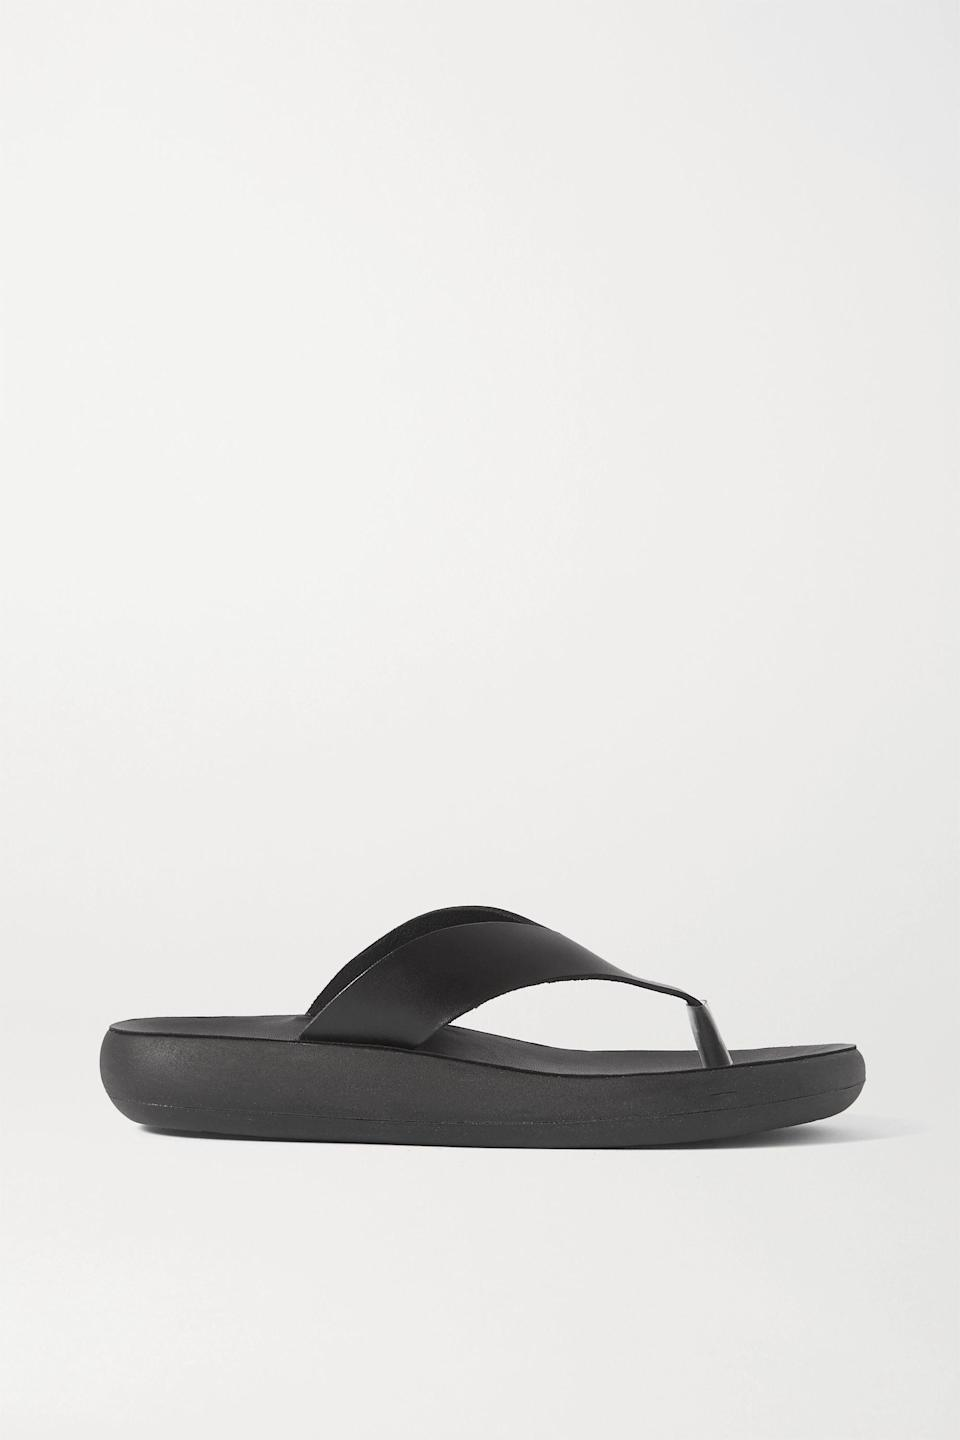 """<p><strong>Ancient Greek Sandals</strong></p><p>net-a-porter.com</p><p><strong>$220.00</strong></p><p><a href=""""https://go.redirectingat.com?id=74968X1596630&url=https%3A%2F%2Fwww.net-a-porter.com%2Fen-us%2Fshop%2Fproduct%2Fancient-greek-sandals%2Fcharys-leather-sandals%2F1301206&sref=https%3A%2F%2Fwww.cosmopolitan.com%2Fstyle-beauty%2Ffashion%2Fg35017315%2F2021-shoe-trends%2F"""" rel=""""nofollow noopener"""" target=""""_blank"""" data-ylk=""""slk:Shop Now"""" class=""""link rapid-noclick-resp"""">Shop Now</a></p><p>These leather flip flops have a cushioned footbed, so they're extra supportive. </p>"""